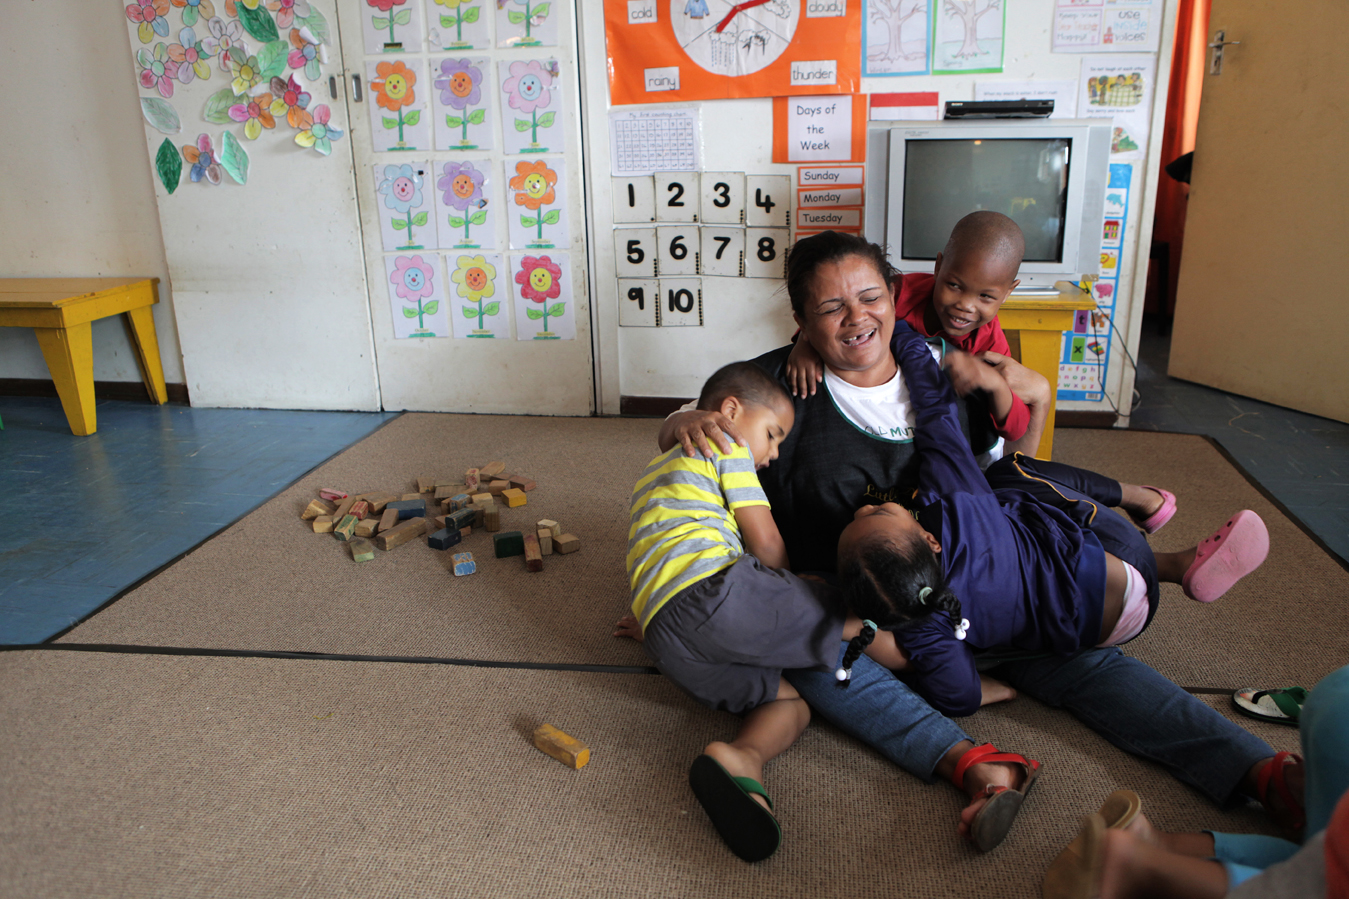 Noblene Boyles, 40, is an ECD teacher at the Little David Educare Centre in Wentworth, a township on the southern side of Durban, in KwaZulu-Natal province. She has been teaching at Little David for seven years, and was recently awarded the 2013 ABSA ECD Award of Excellence for KwaZulu-Natal. She goes on to compete at the national level in February 2014. Over 92% of preschool children in KwaZulu-Natal attend unregistered ECD centres (crèches). Save the Children, operating in KZN for over 50 years, recognised the need to support crèches in the area with better management skills and access to learning materials, as well as running the crèche forums and supporting crèches with registration to become ECD centres.